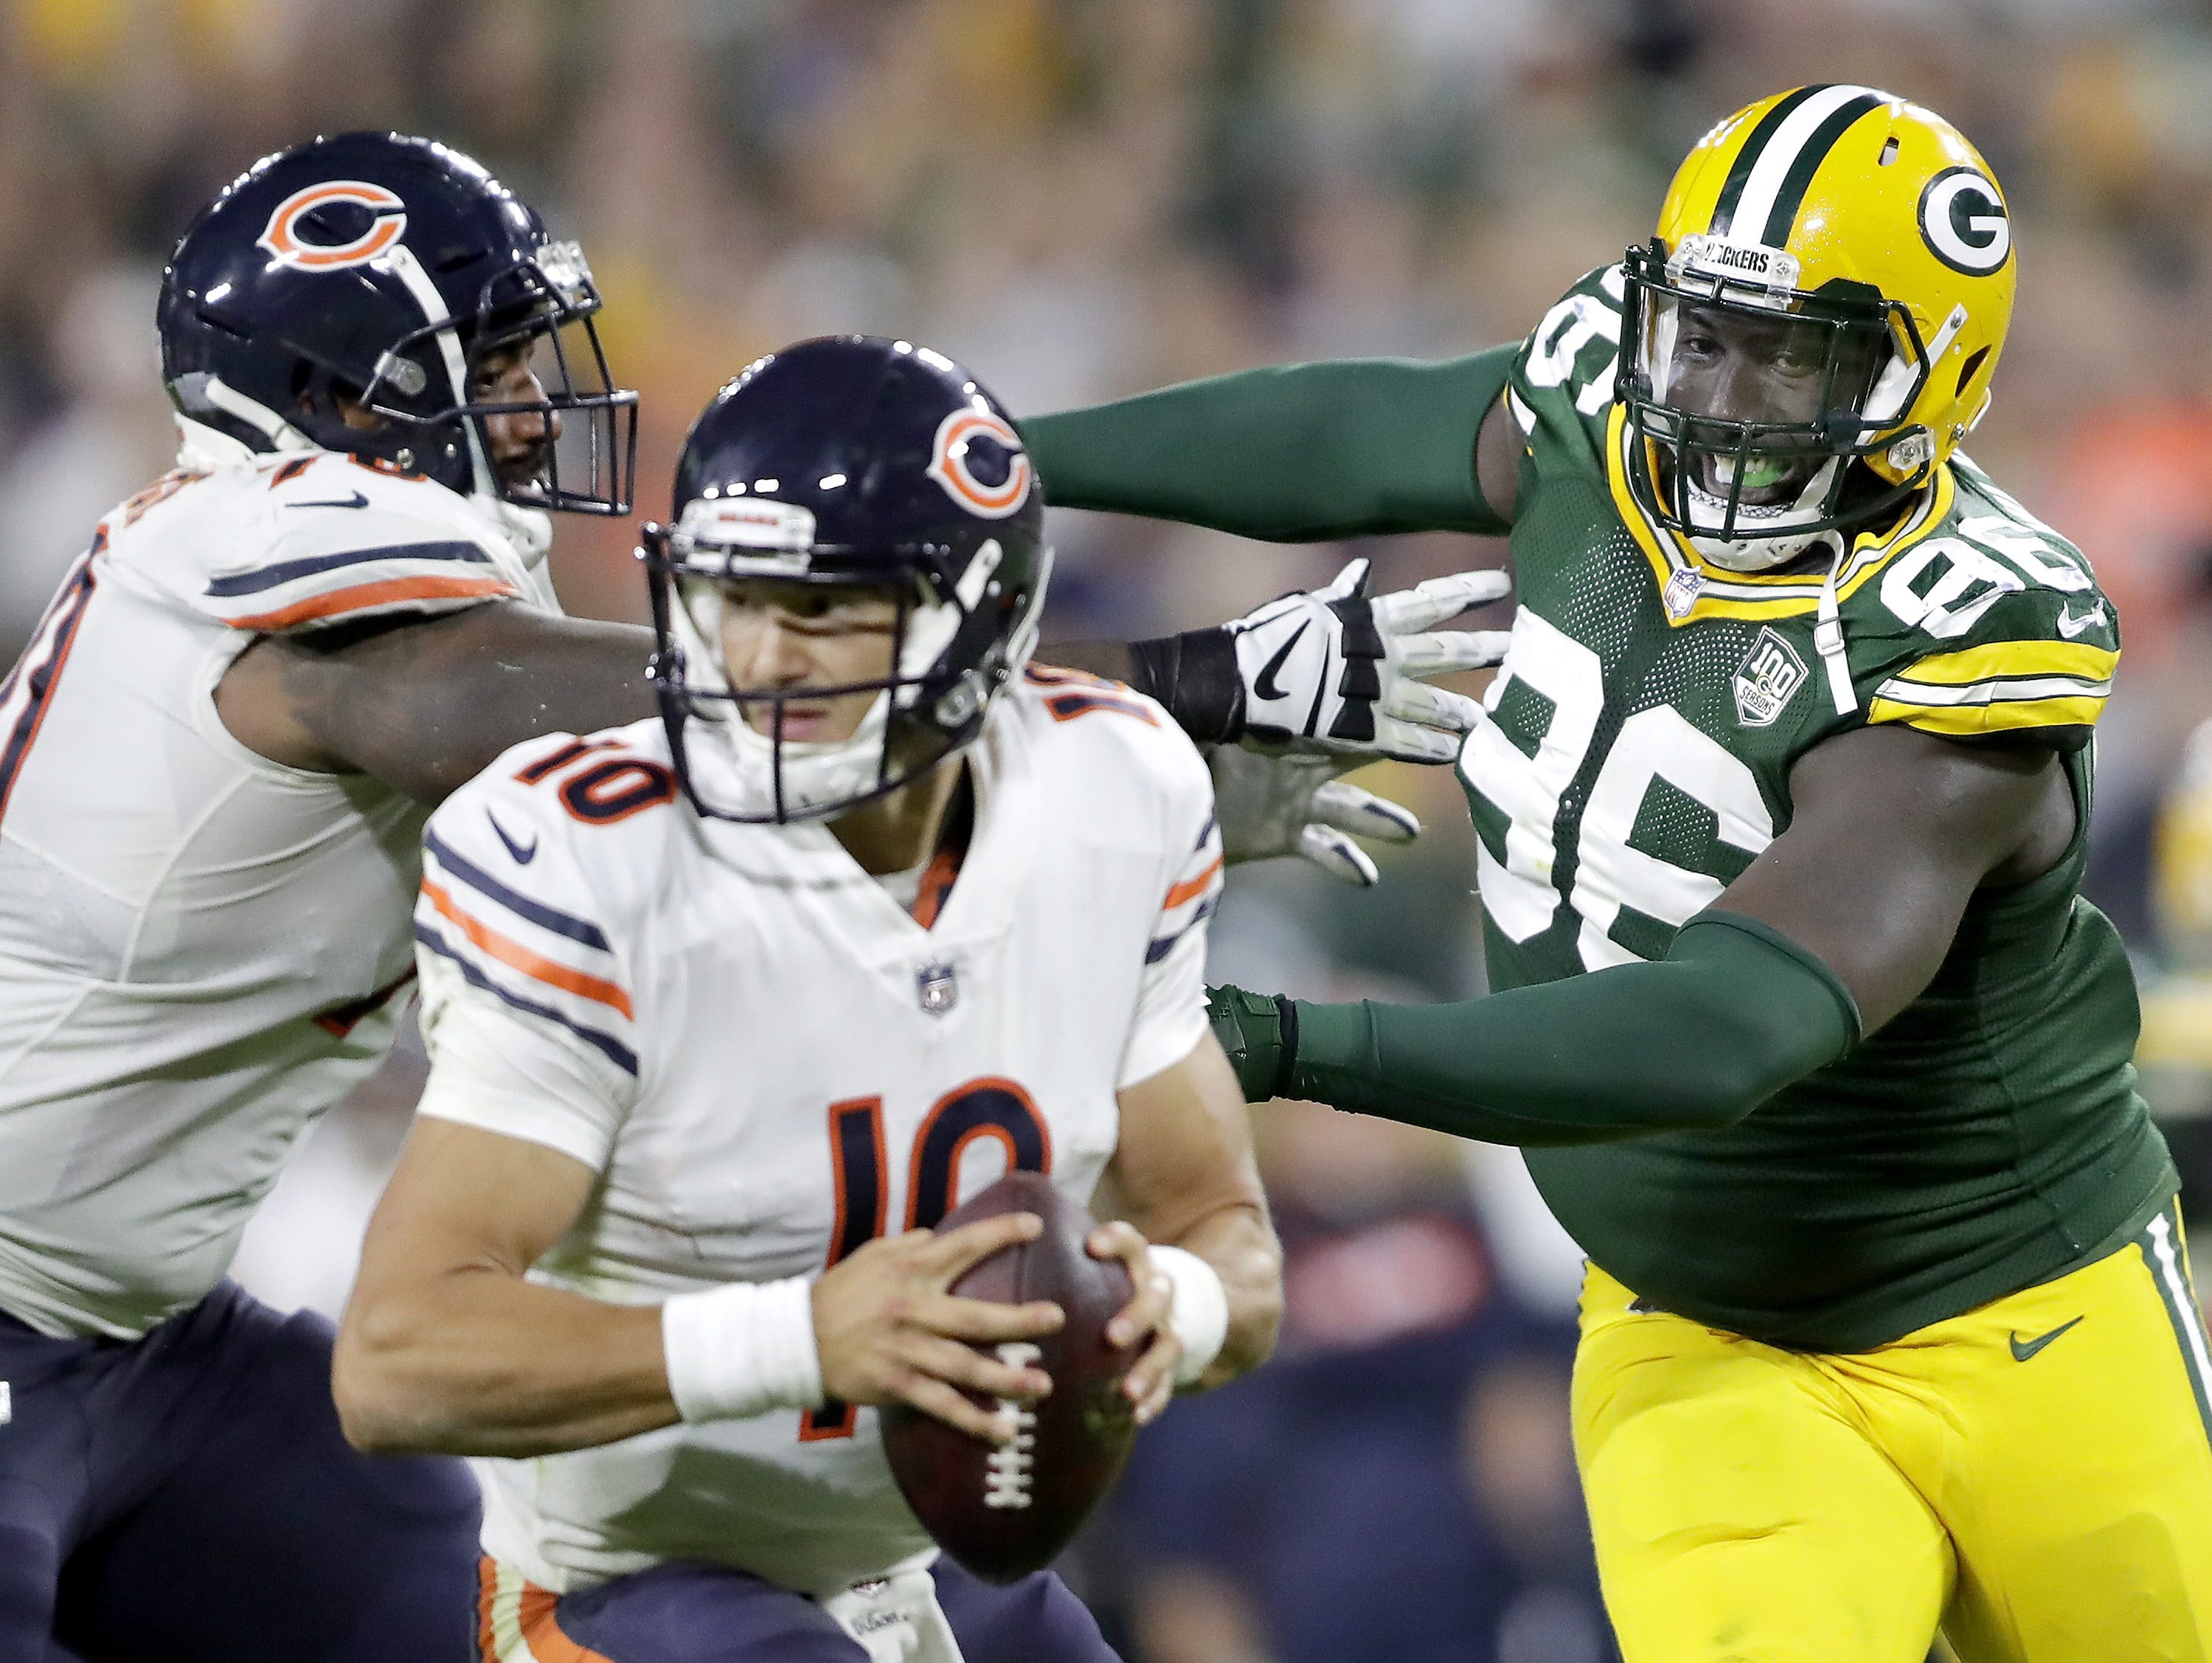 Green Bay Packers' Muhammad Wilkerson rushes Chicago Bears' Mitchell Trubisky in the fourth quartera in the season opener on Sunday, September 9, 2018, at Lambeau Field in Green Bay, Wis. The Packers defeated the Bears 24 to 23.